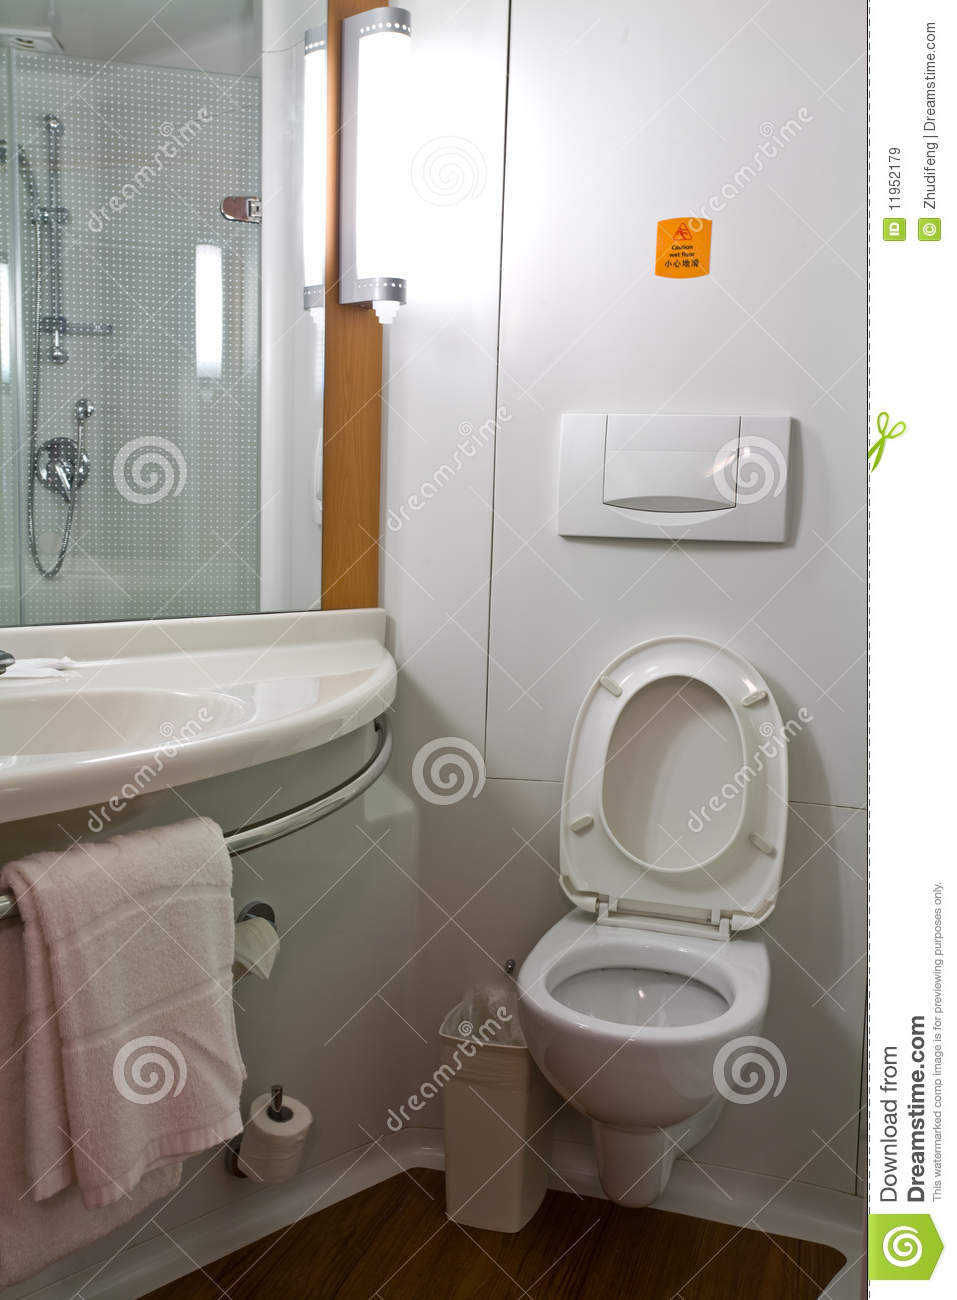 Modern And Practical Bathroom Royalty Free Stock Images